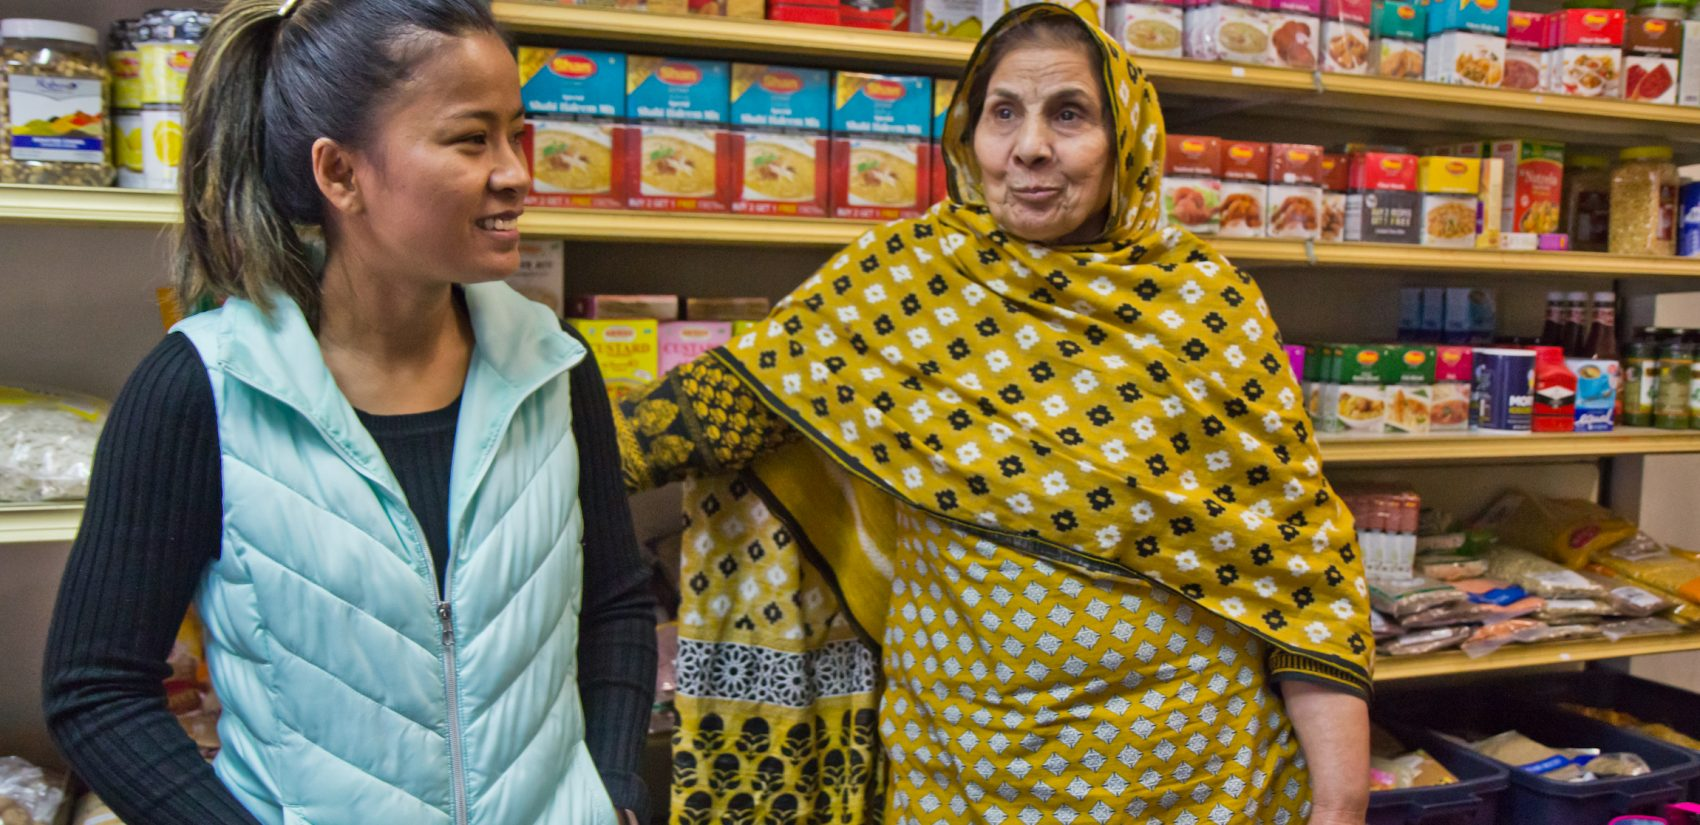 Somaly Osteen (left) won the Instigator Award for her work on the South 7th Street commercial corridor. Irshad Aslam (right) has owned the Aslam Market since 1986. (Kimberly Paynter/WHYY)